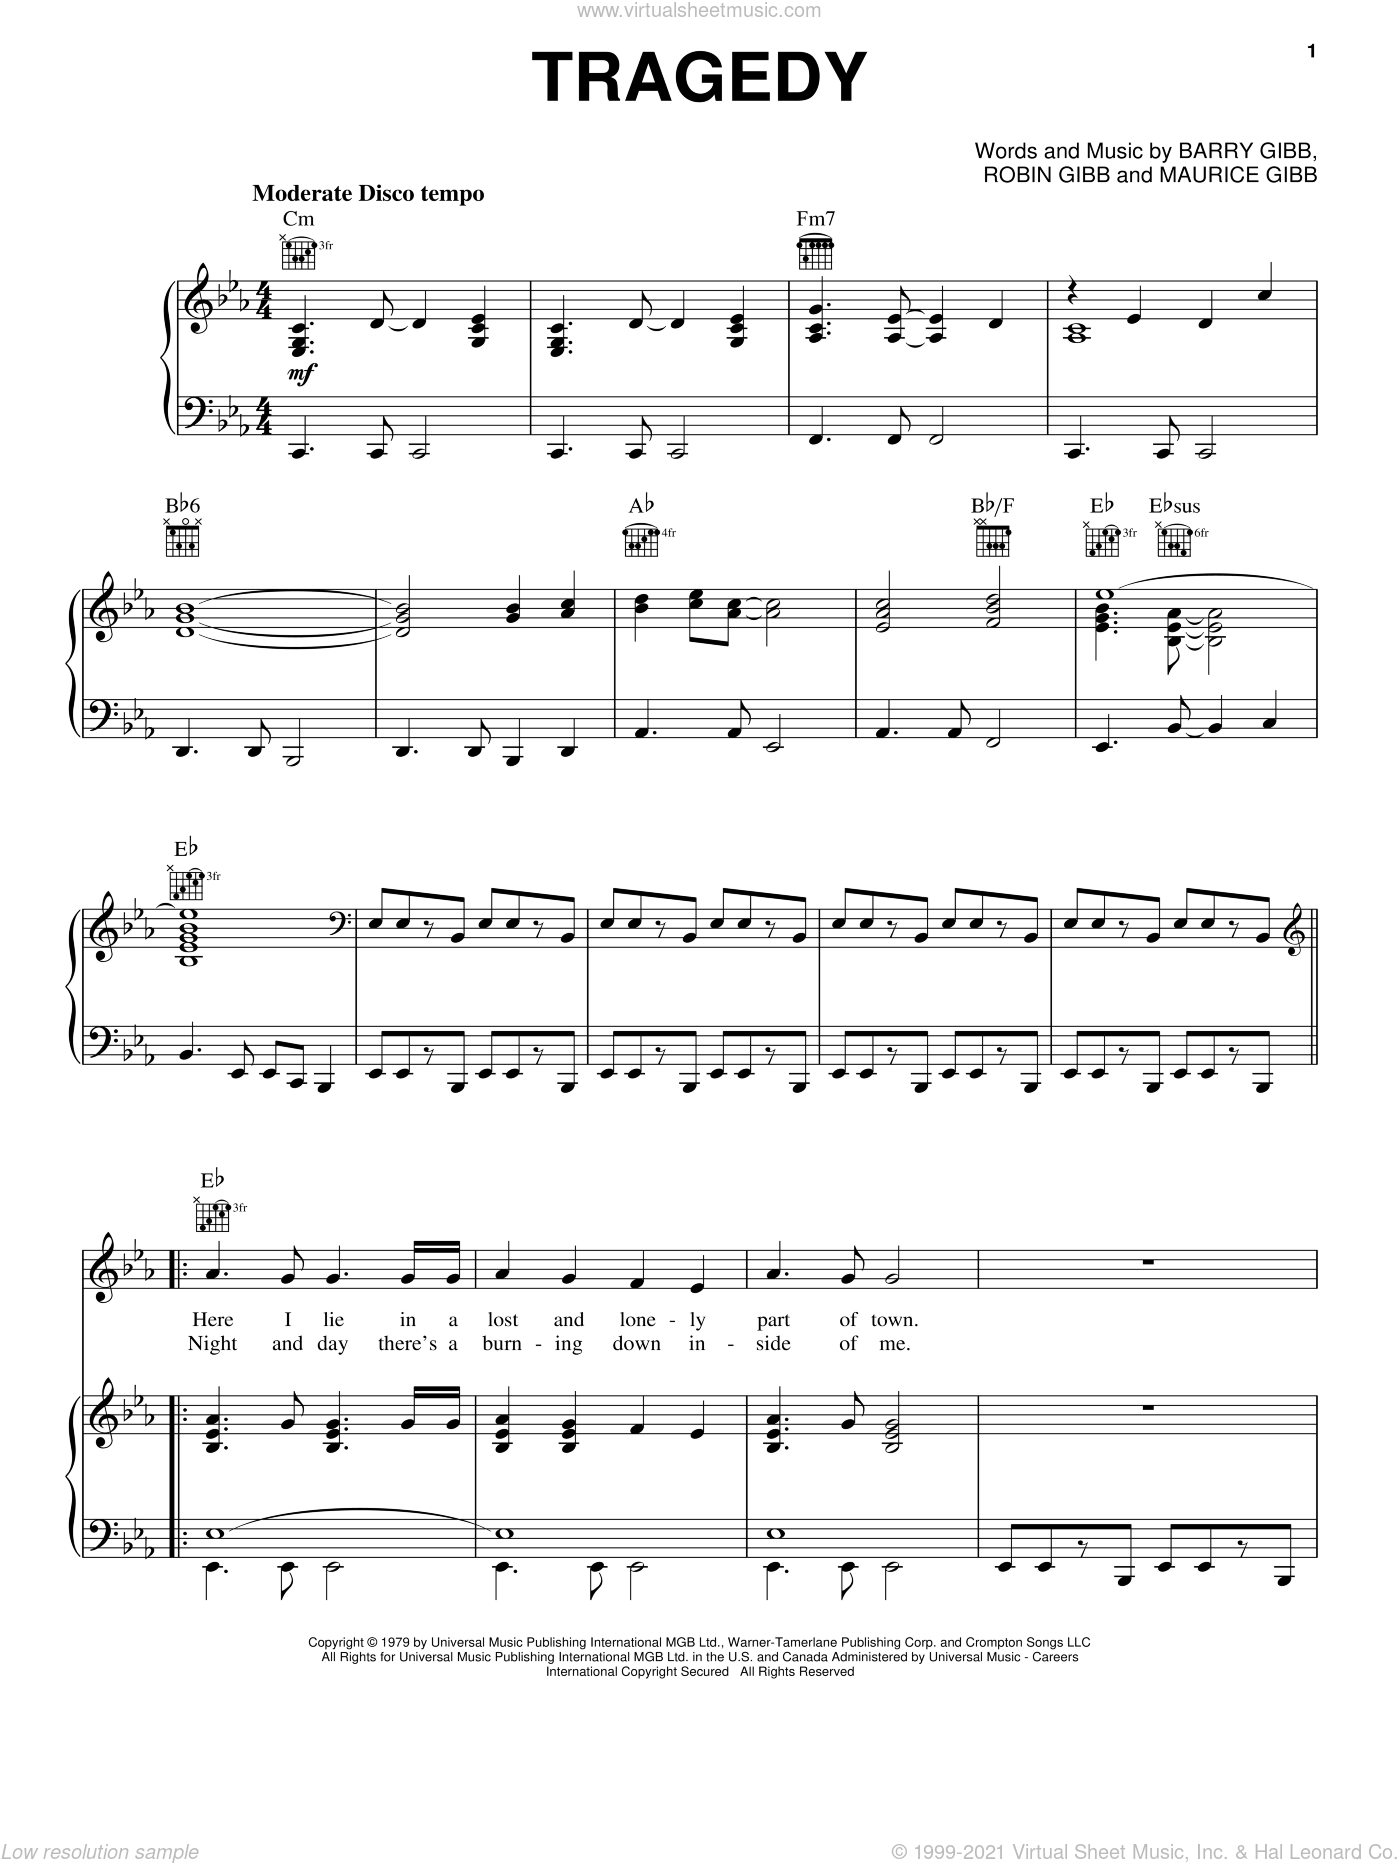 Tragedy sheet music for voice, piano or guitar by Bee Gees, Barry Gibb, Maurice Gibb and Robin Gibb, intermediate skill level